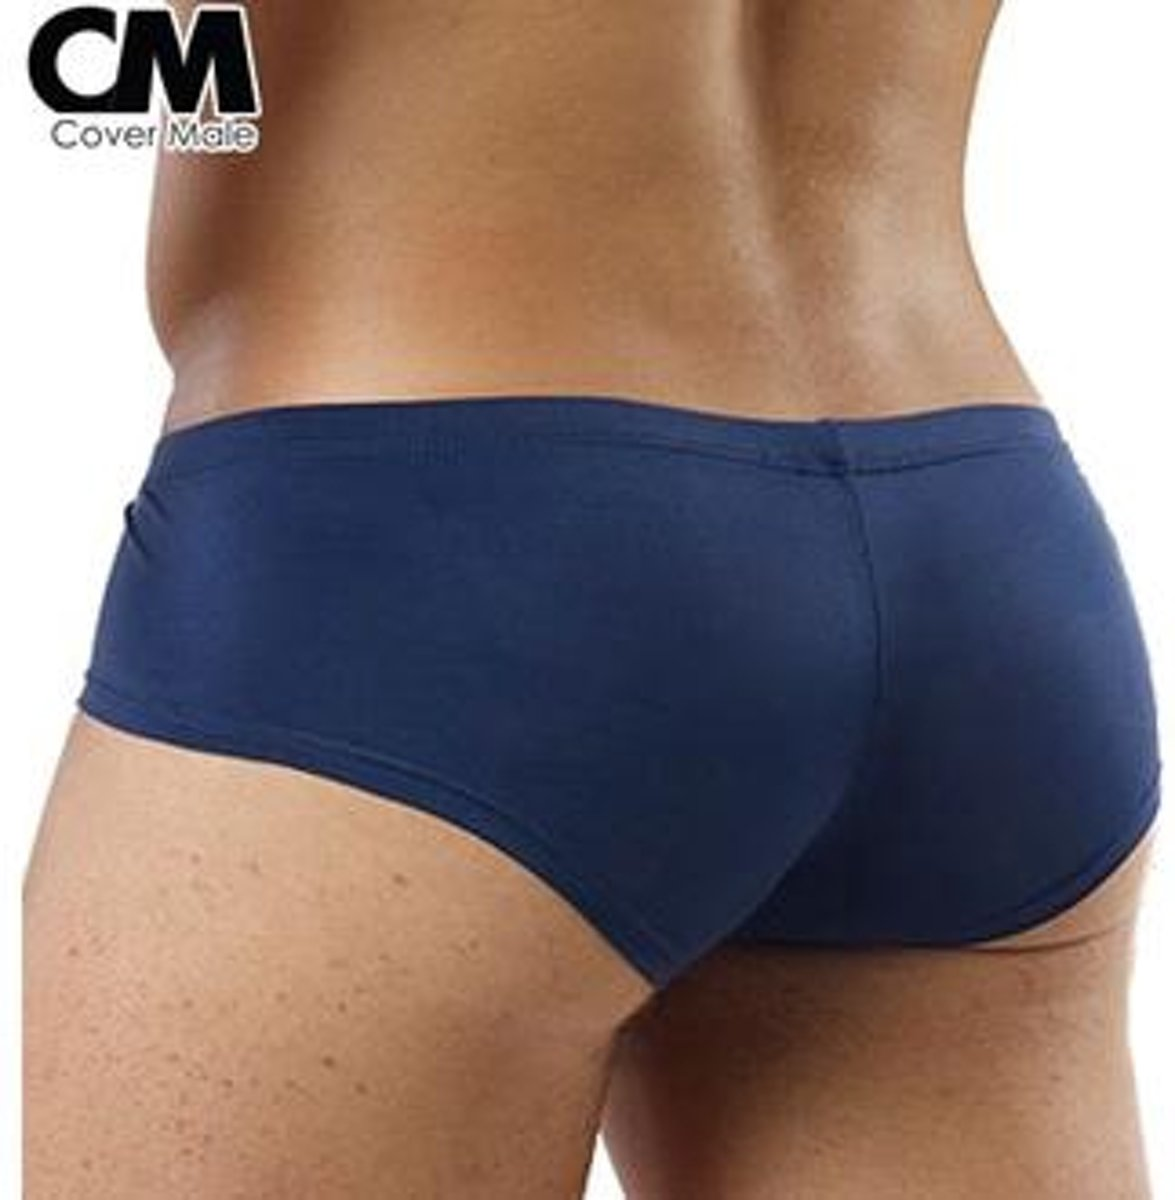 60ddc533b895 bol.com | Cover Male Cheek Boxer - Blauw - Extra Large